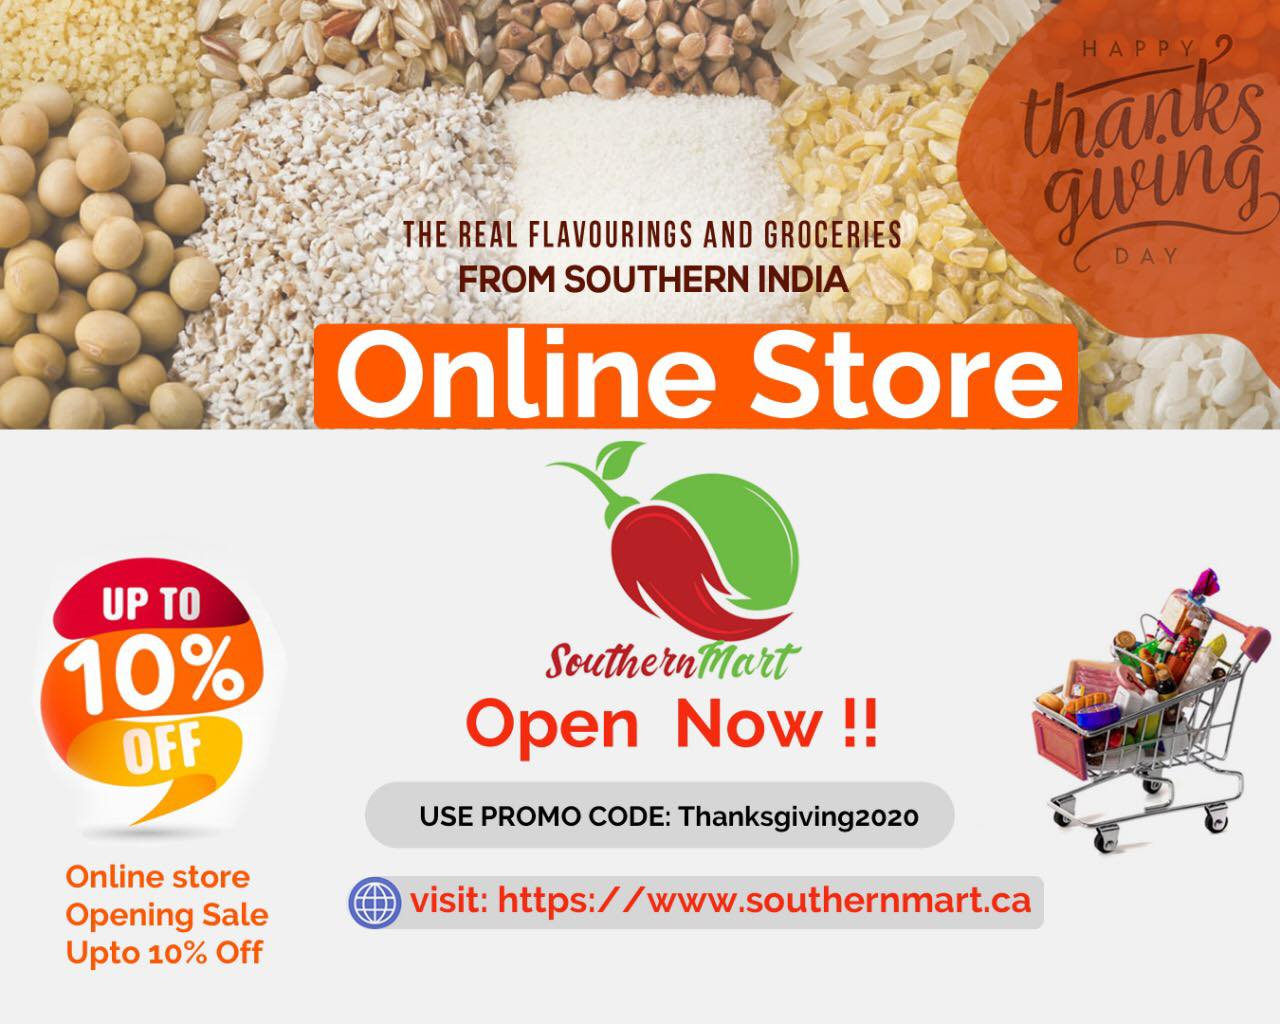 Southern Mart Online Store